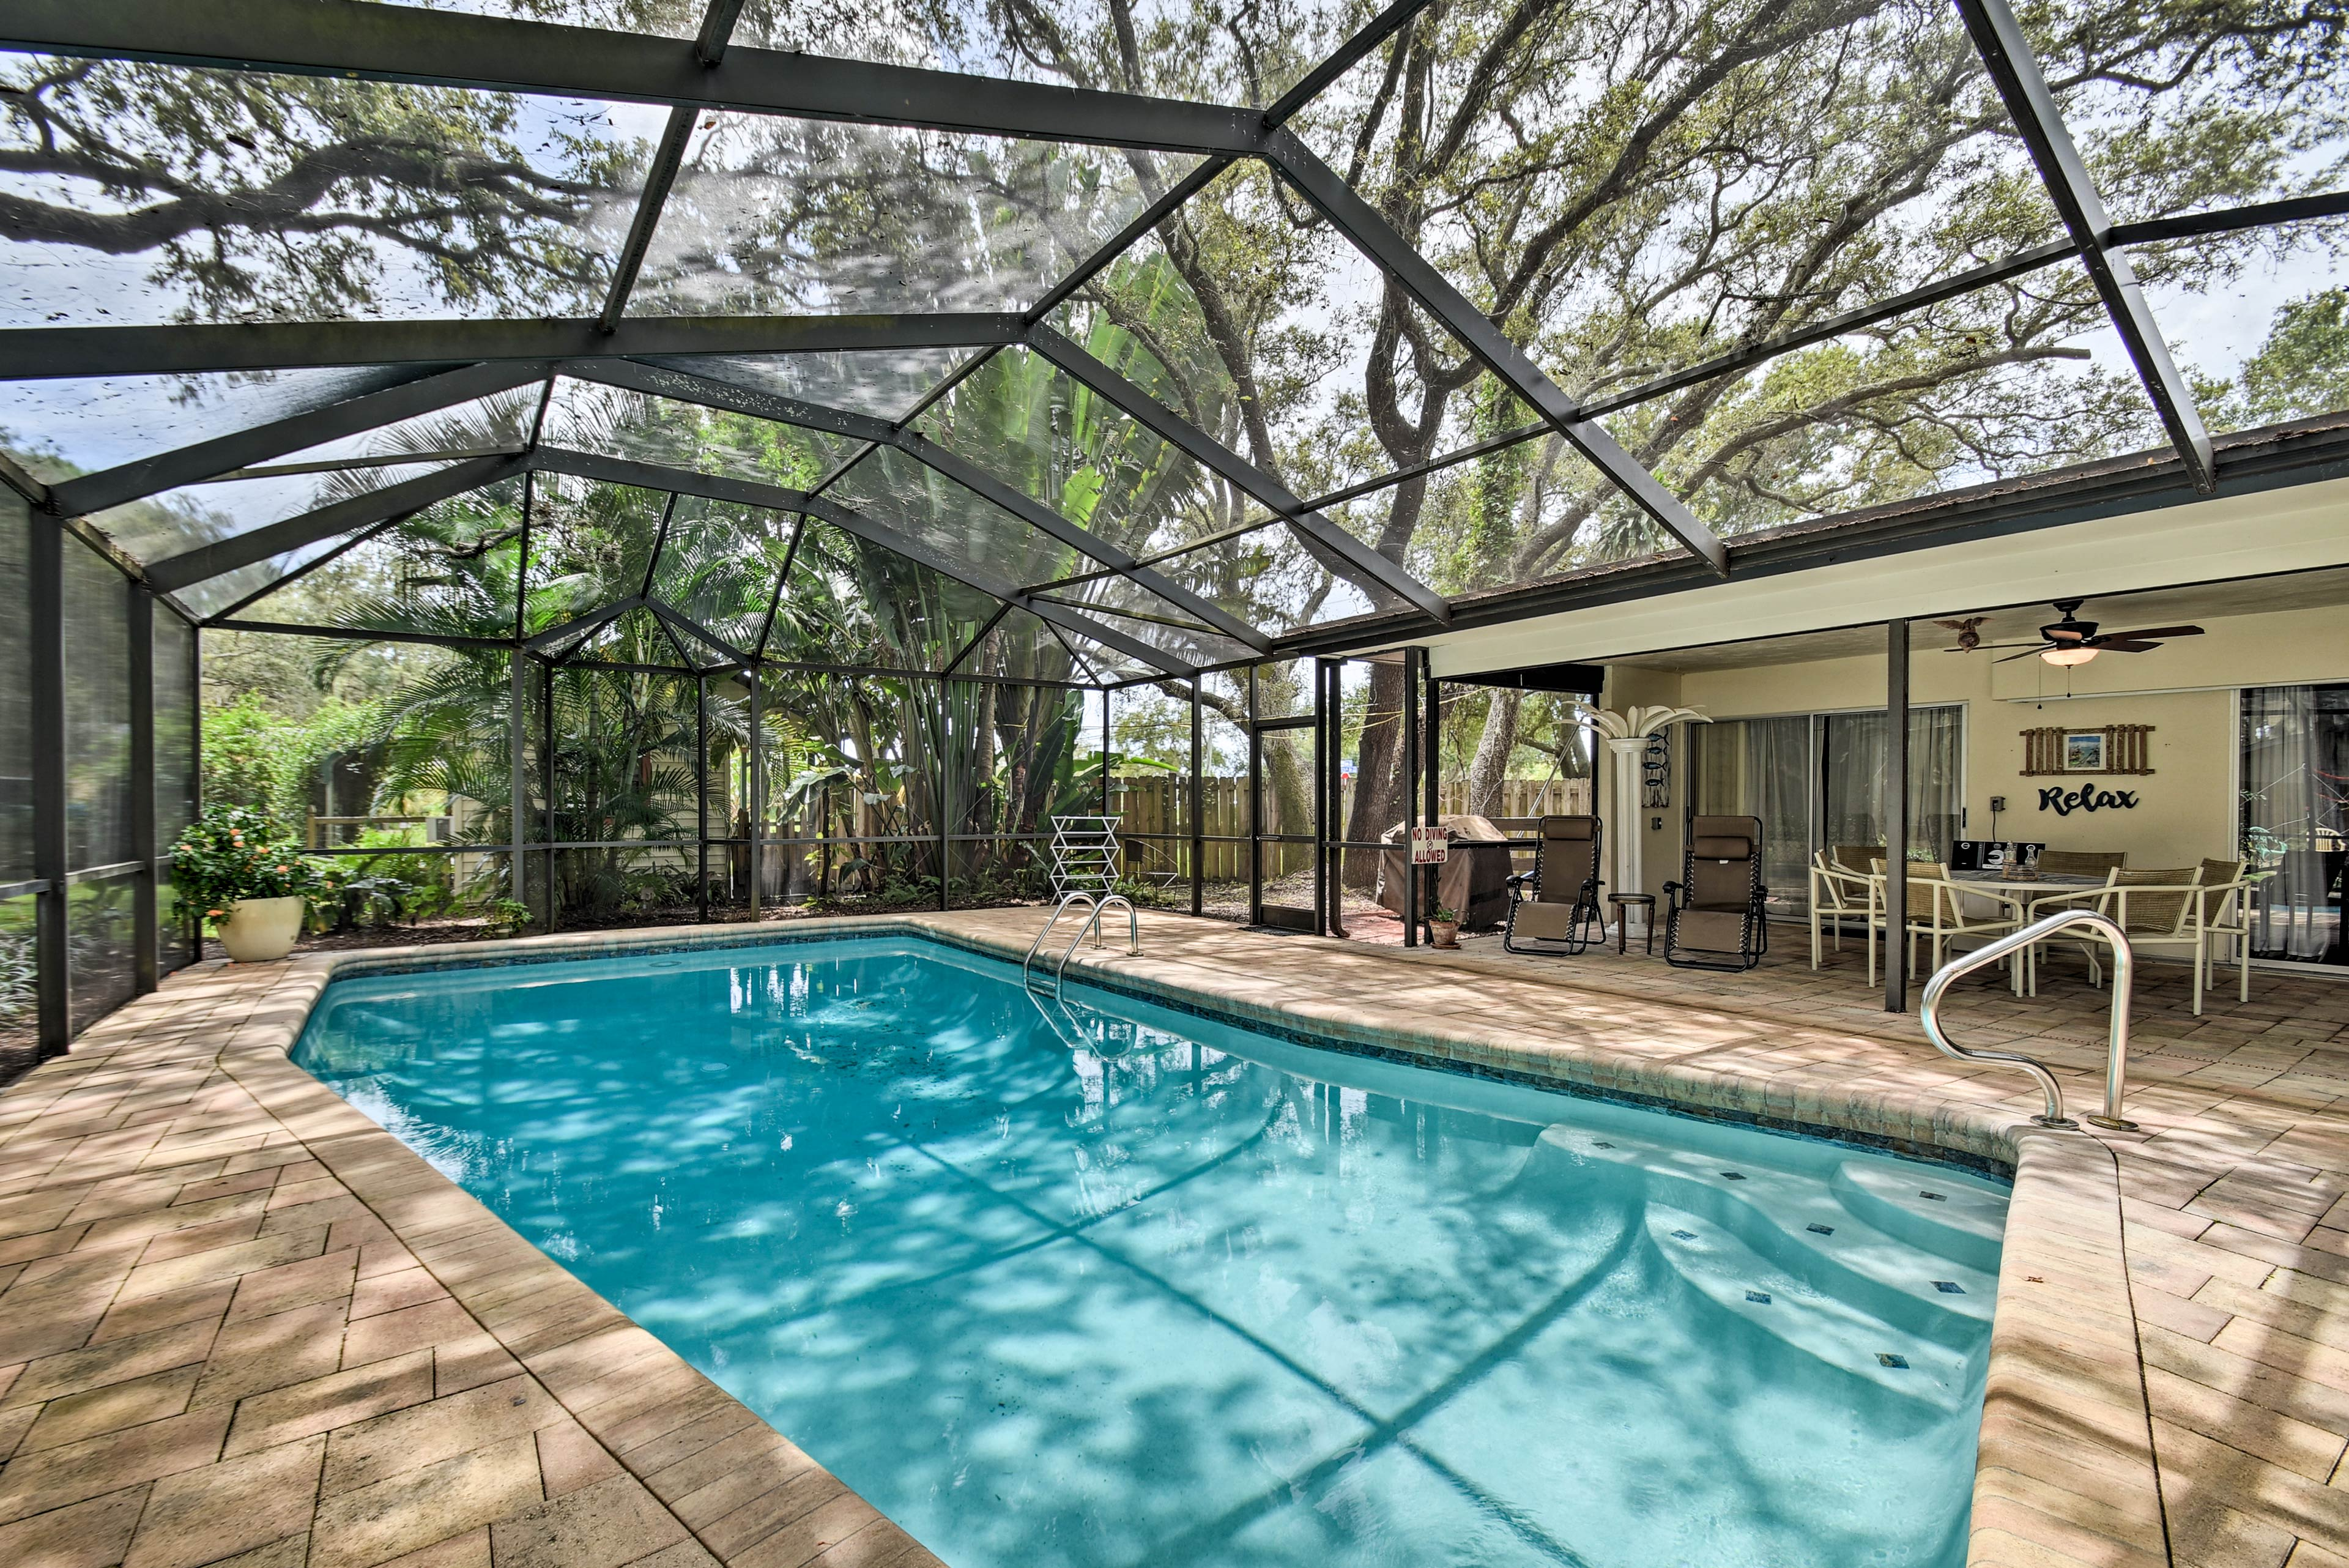 Numerous amenities fill the screened-in pool space.